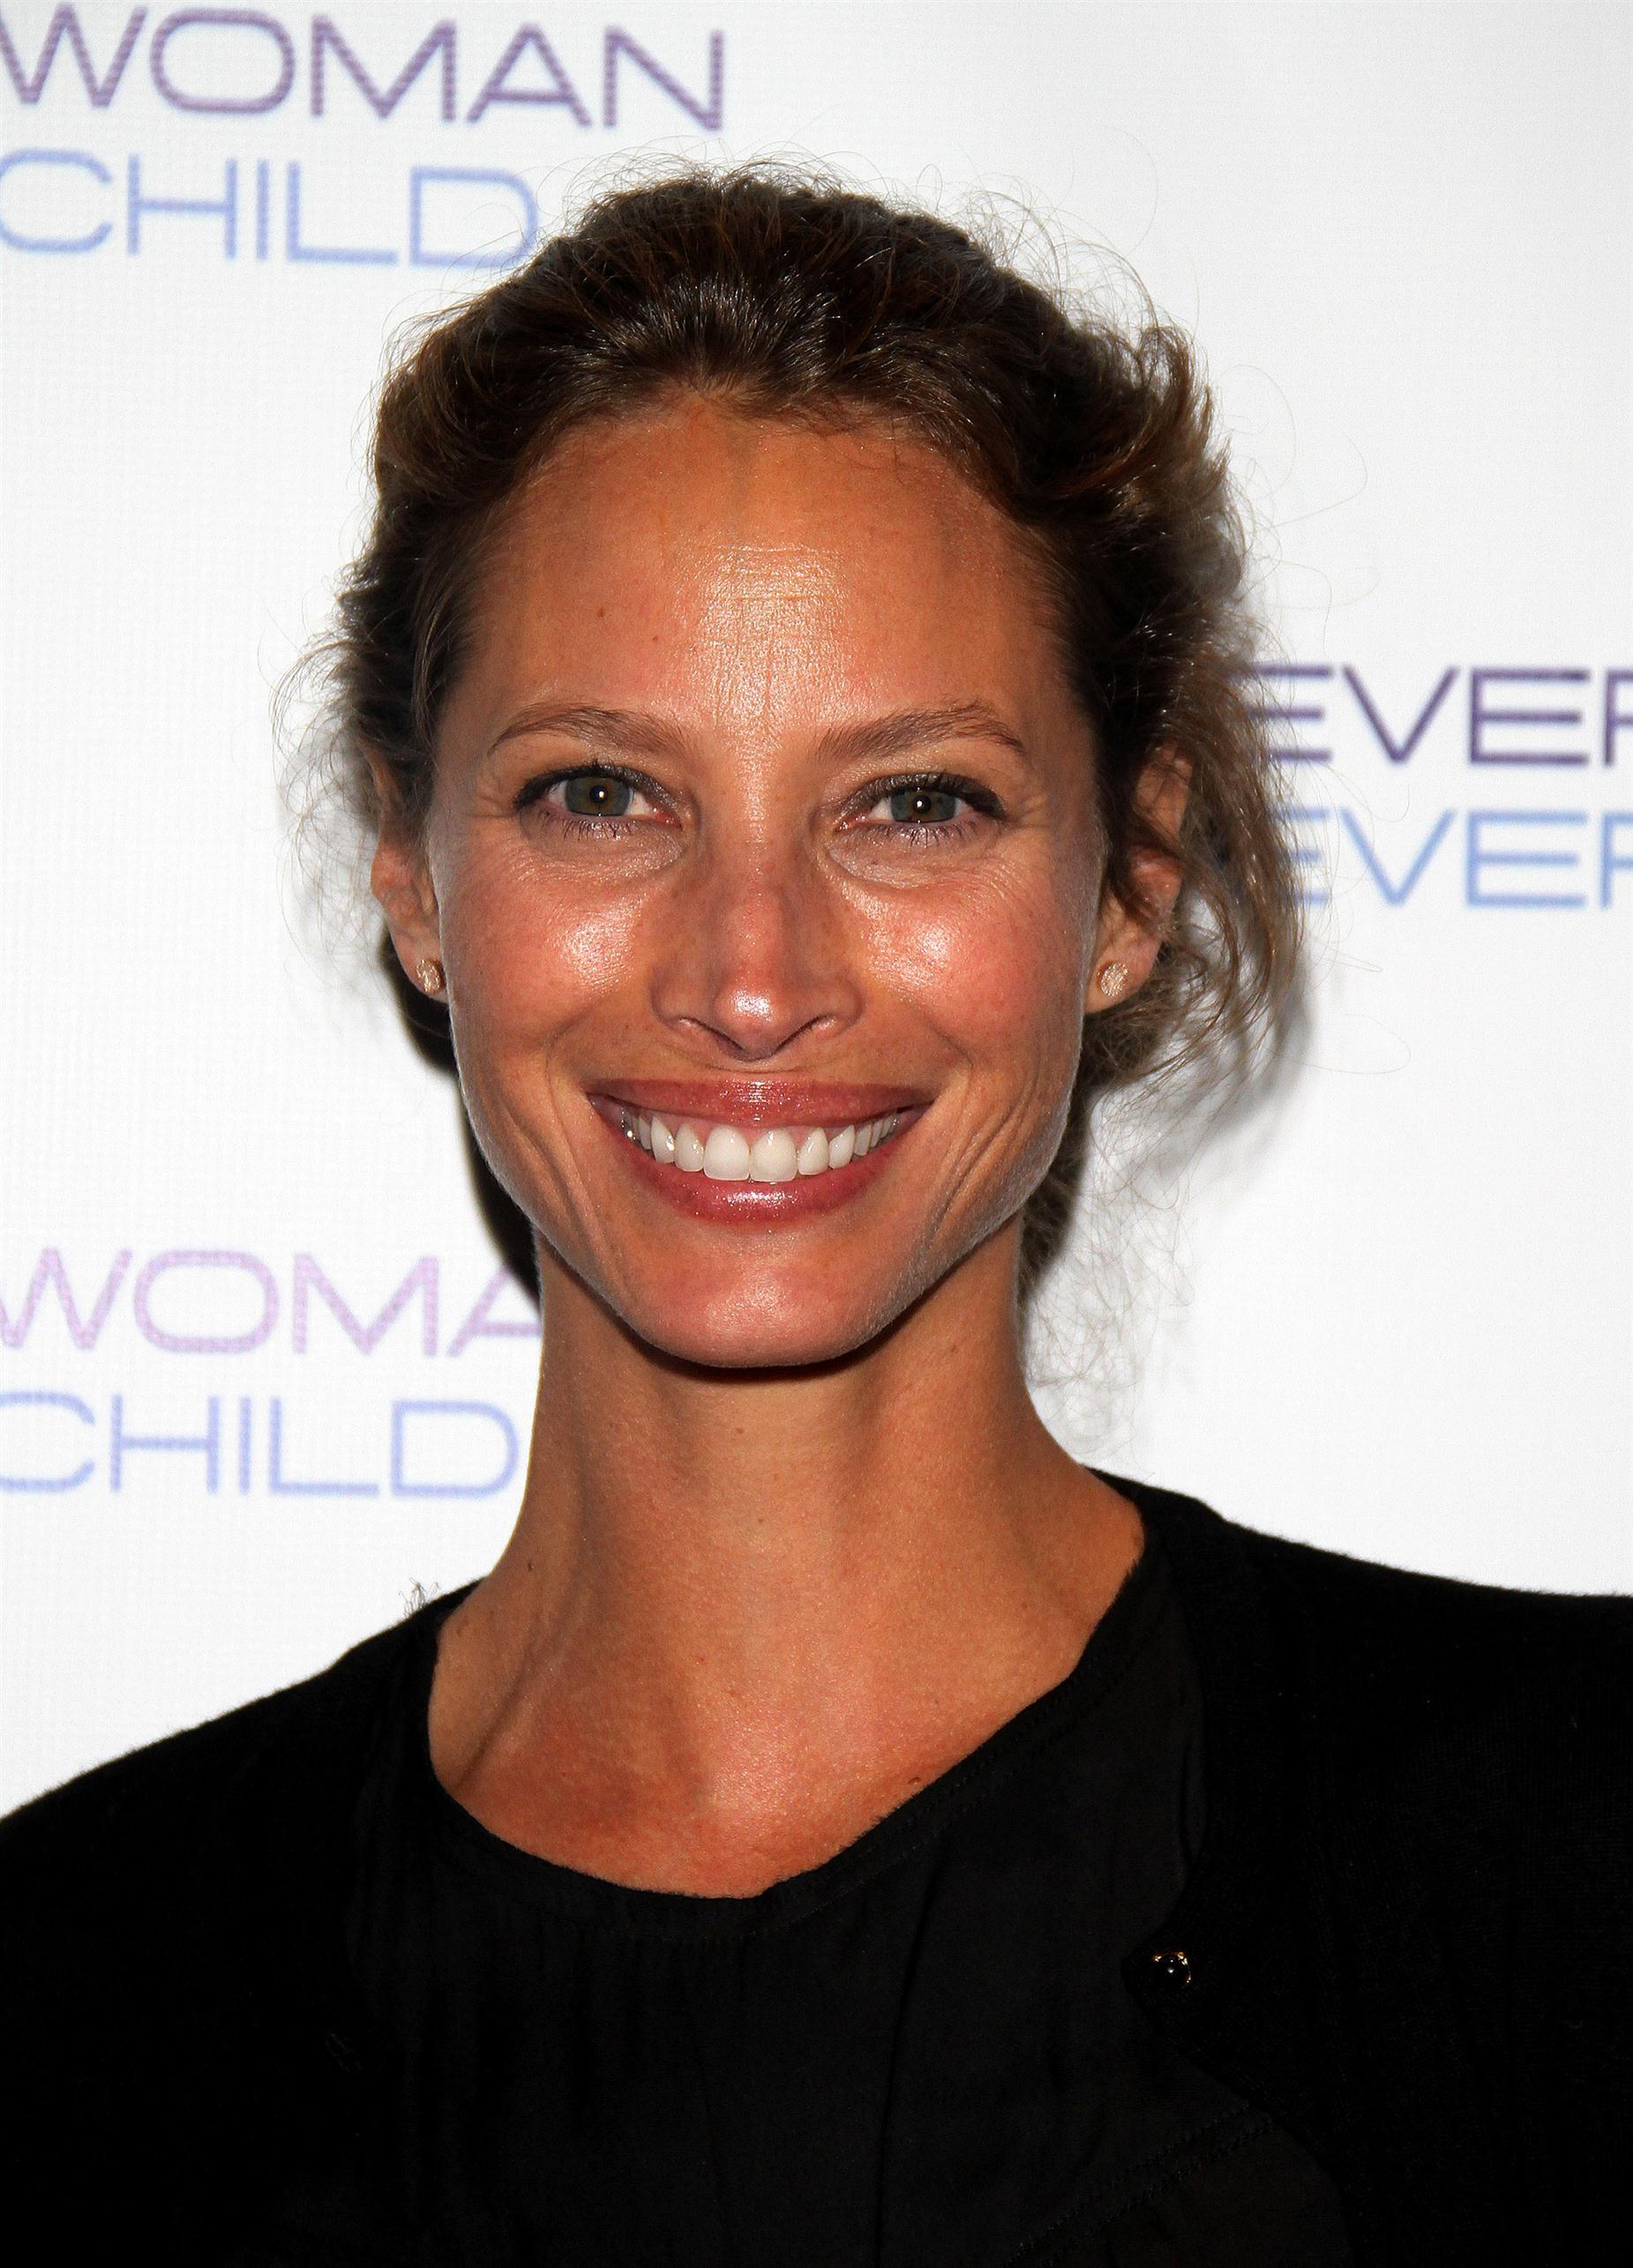 Christy Turlington 2,Every Woman Every Child MDG Reception at the Grand Hyatt Hotel-b9bd6650b7a7f61e14f66ff696be3374